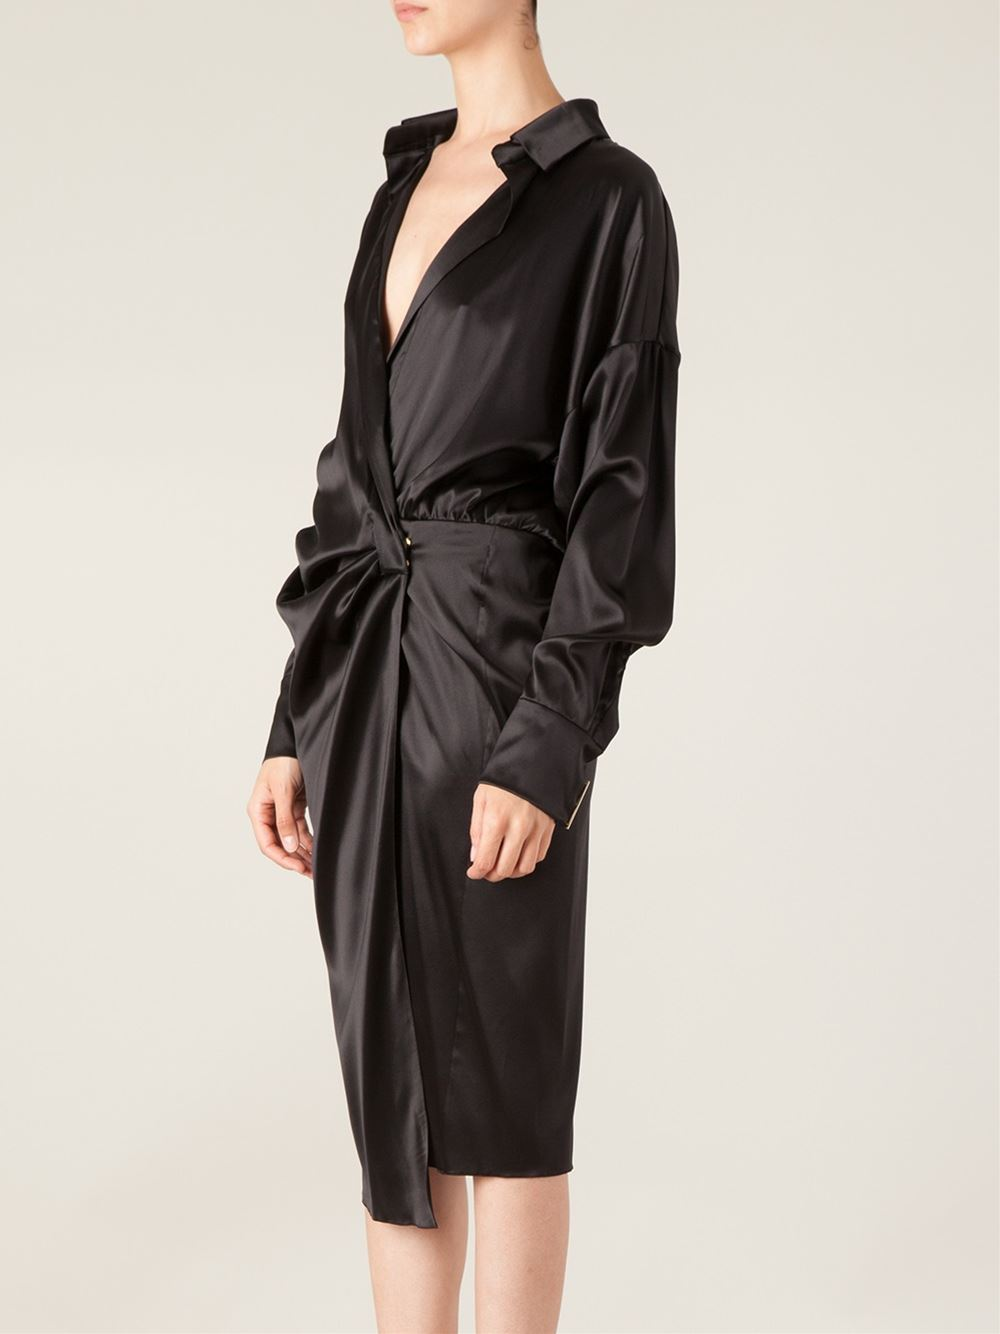 Alexandre Vauthier Draped Shirt Dress - L'eclaireur - Farfetch.com